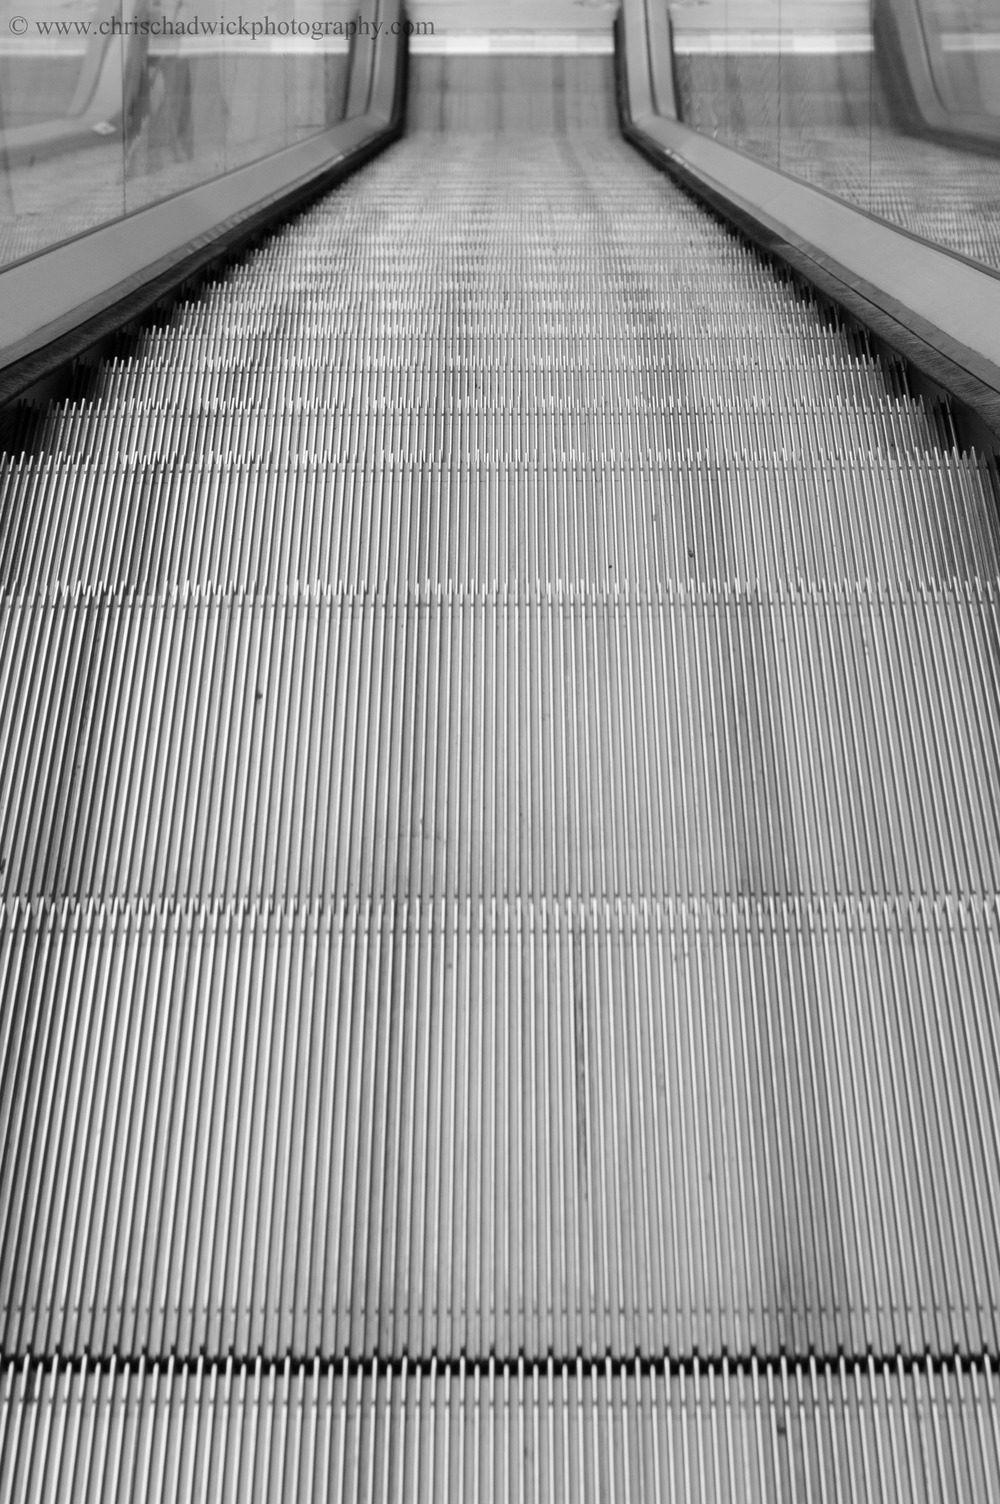 Continuous   Escalators go round and round and round continuously - until the stores close for the night.